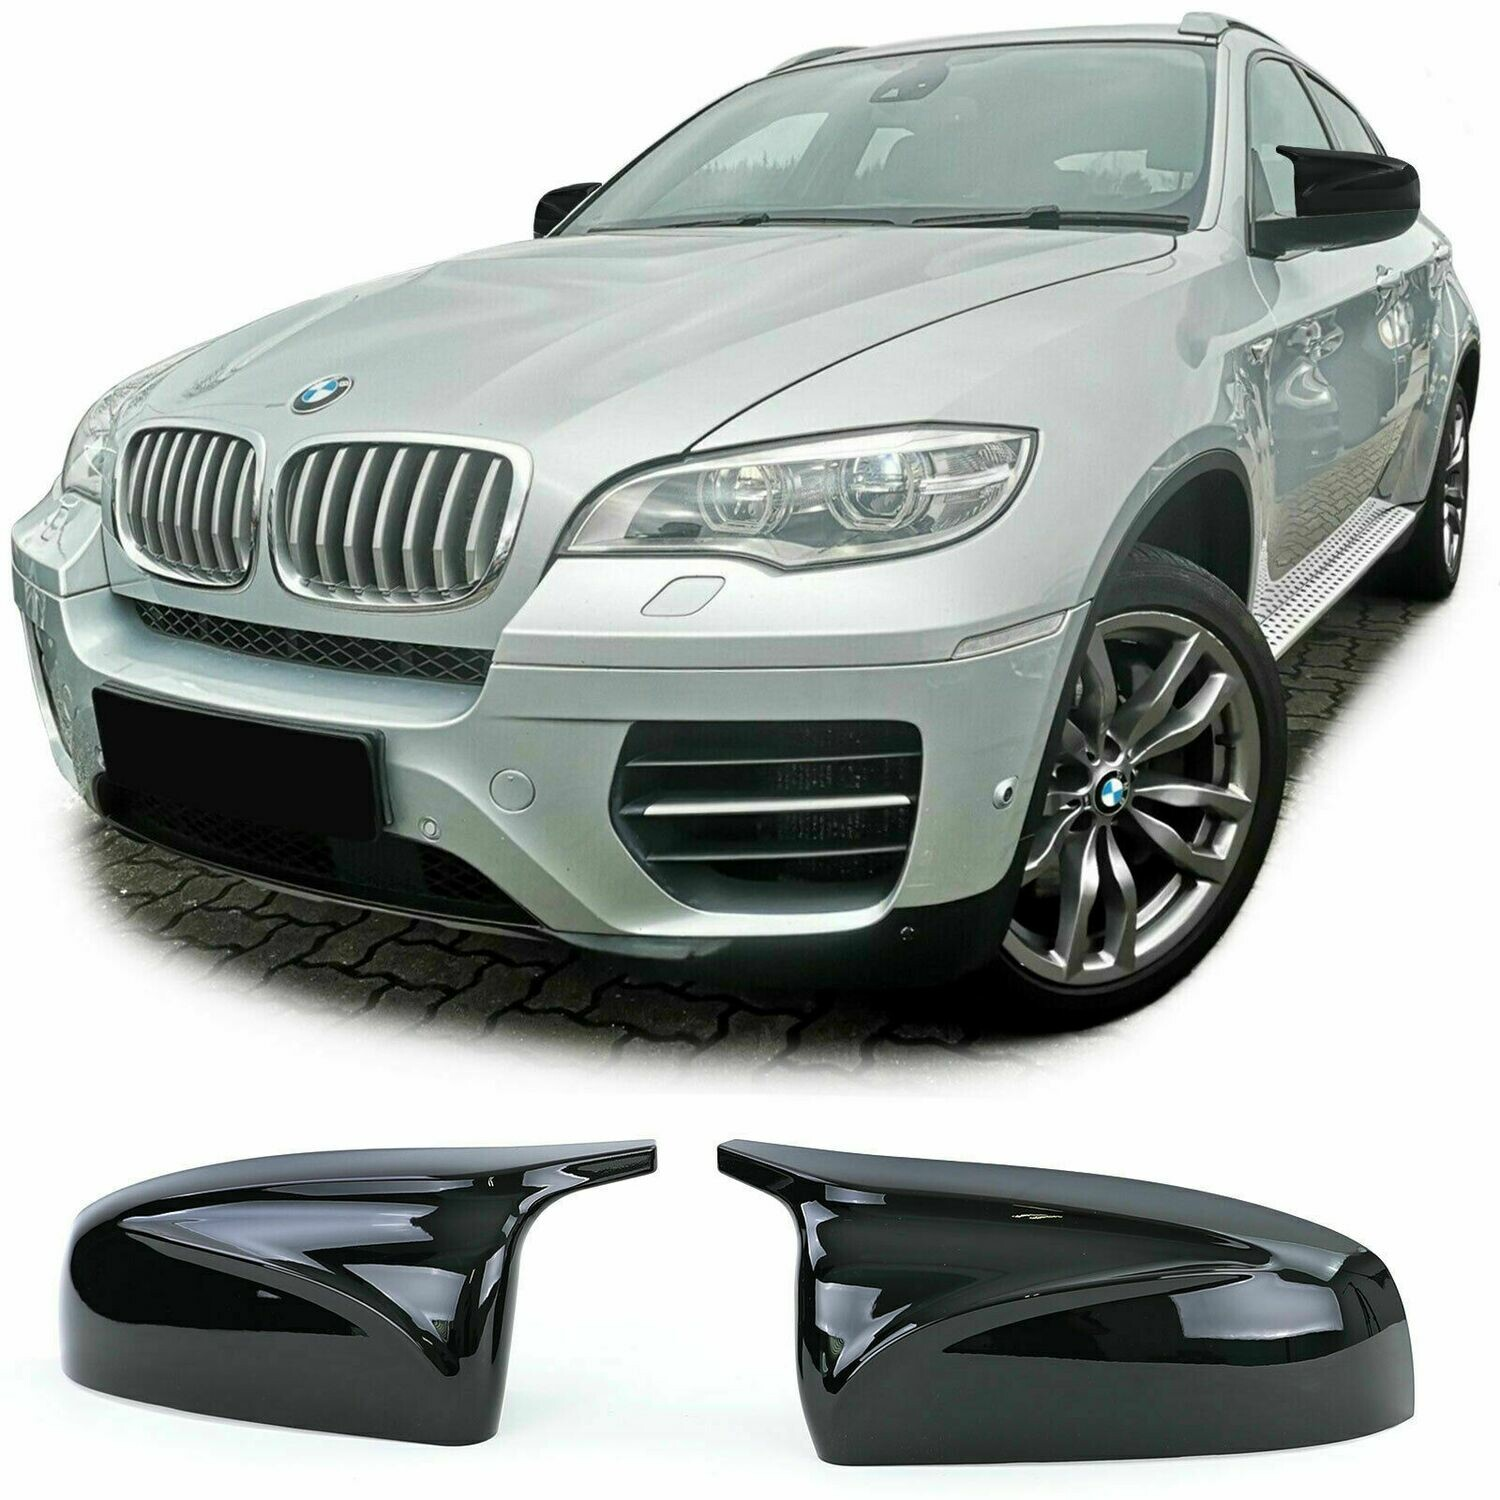 Mirrors Cover Black Gloss for BMW X5 E70 X6 E71 06-13